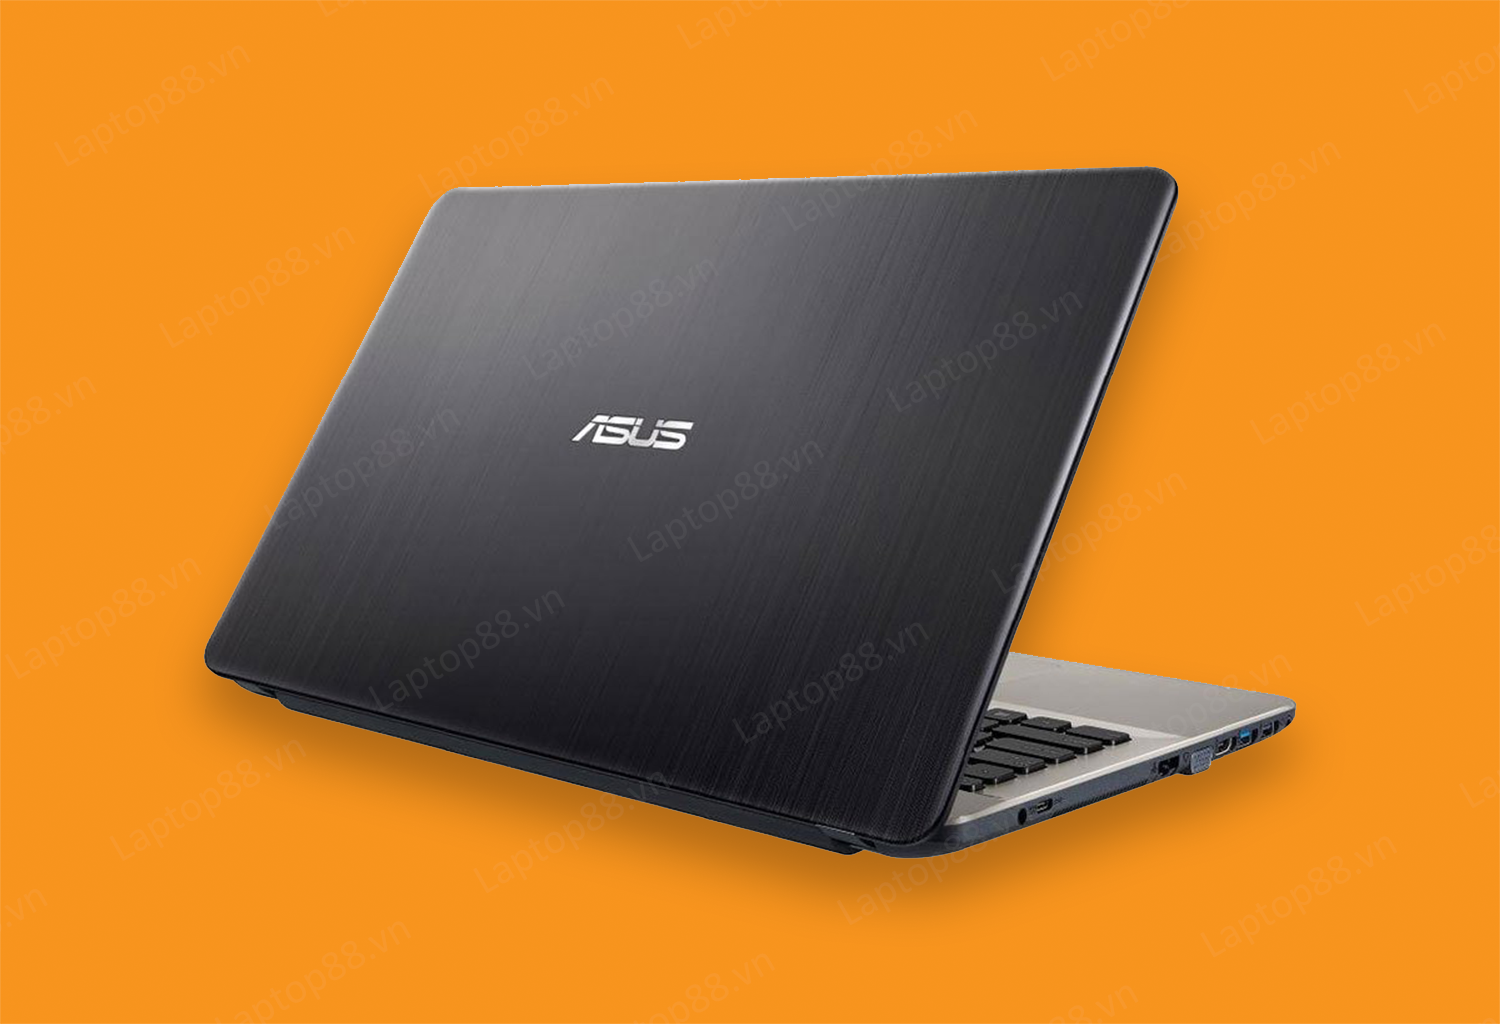 Laptop Asus X541U (Intel Core i5 7200U, RAM 4GB, HDD 500GB, Nvidia GeForce 920M, 15.6 inch HD)2